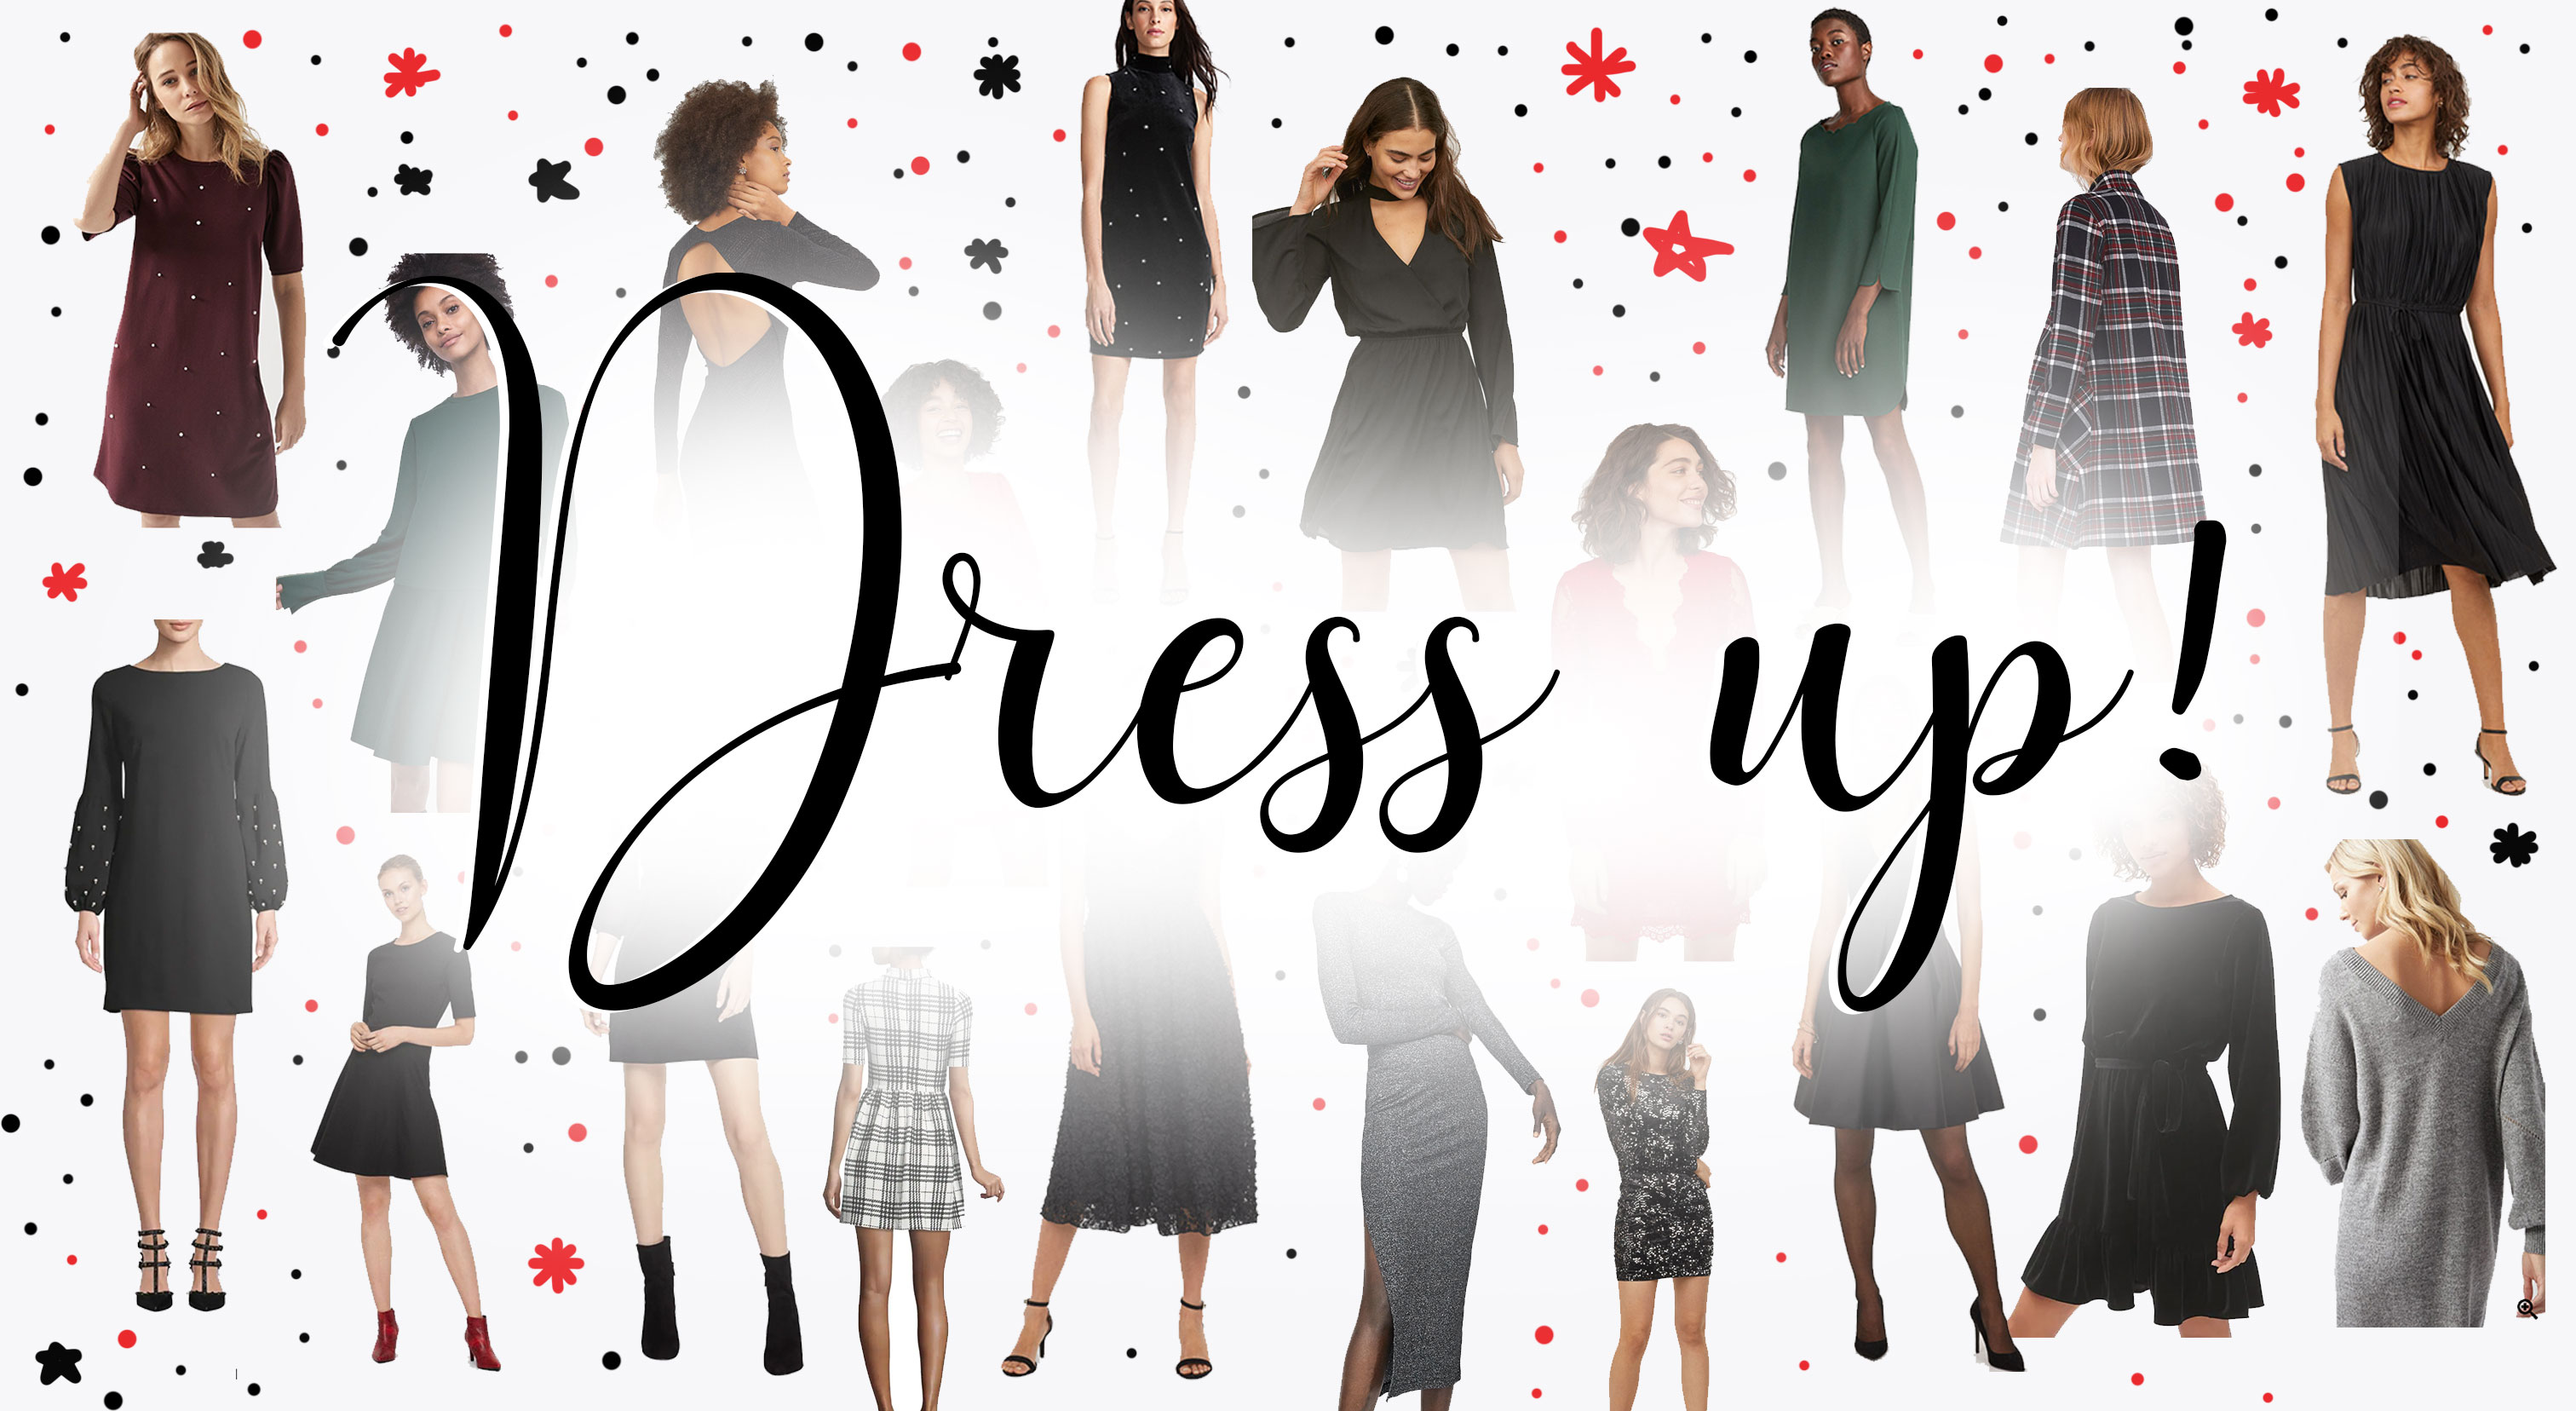 896ed6cbf10 20 holiday dresses for every occasion!